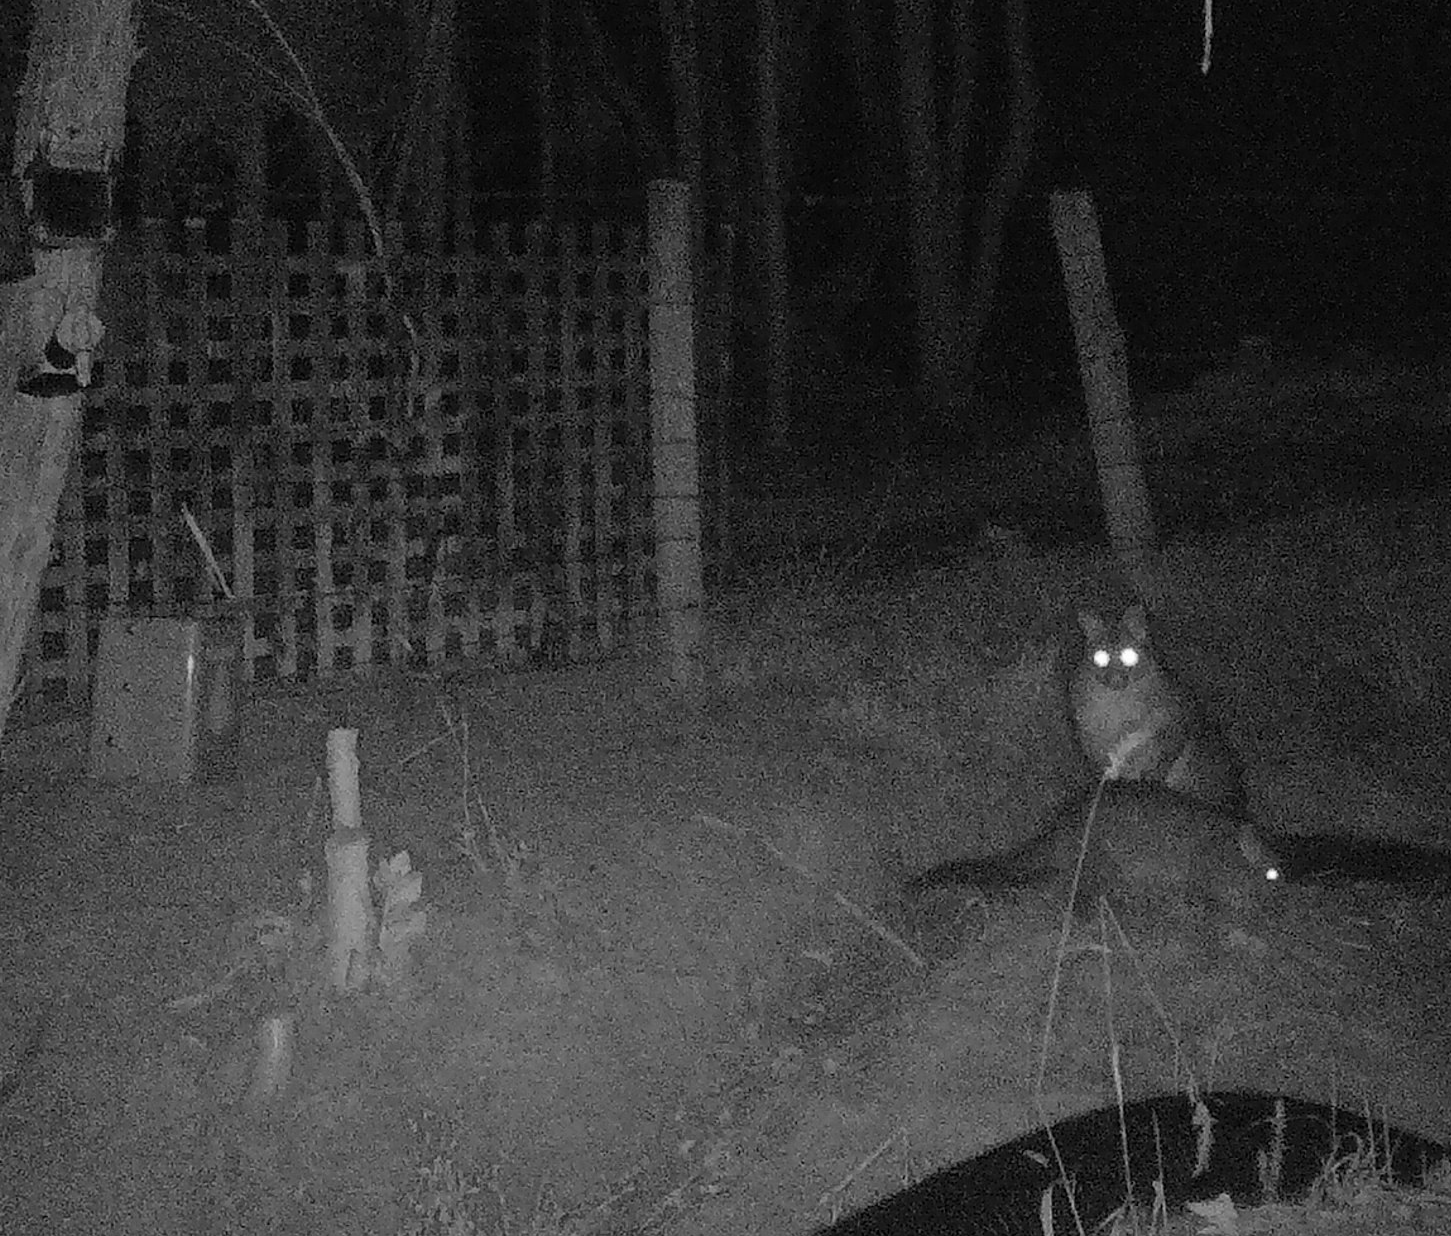 Possums caught by Cacophonometer camera with infrared lighting at night.